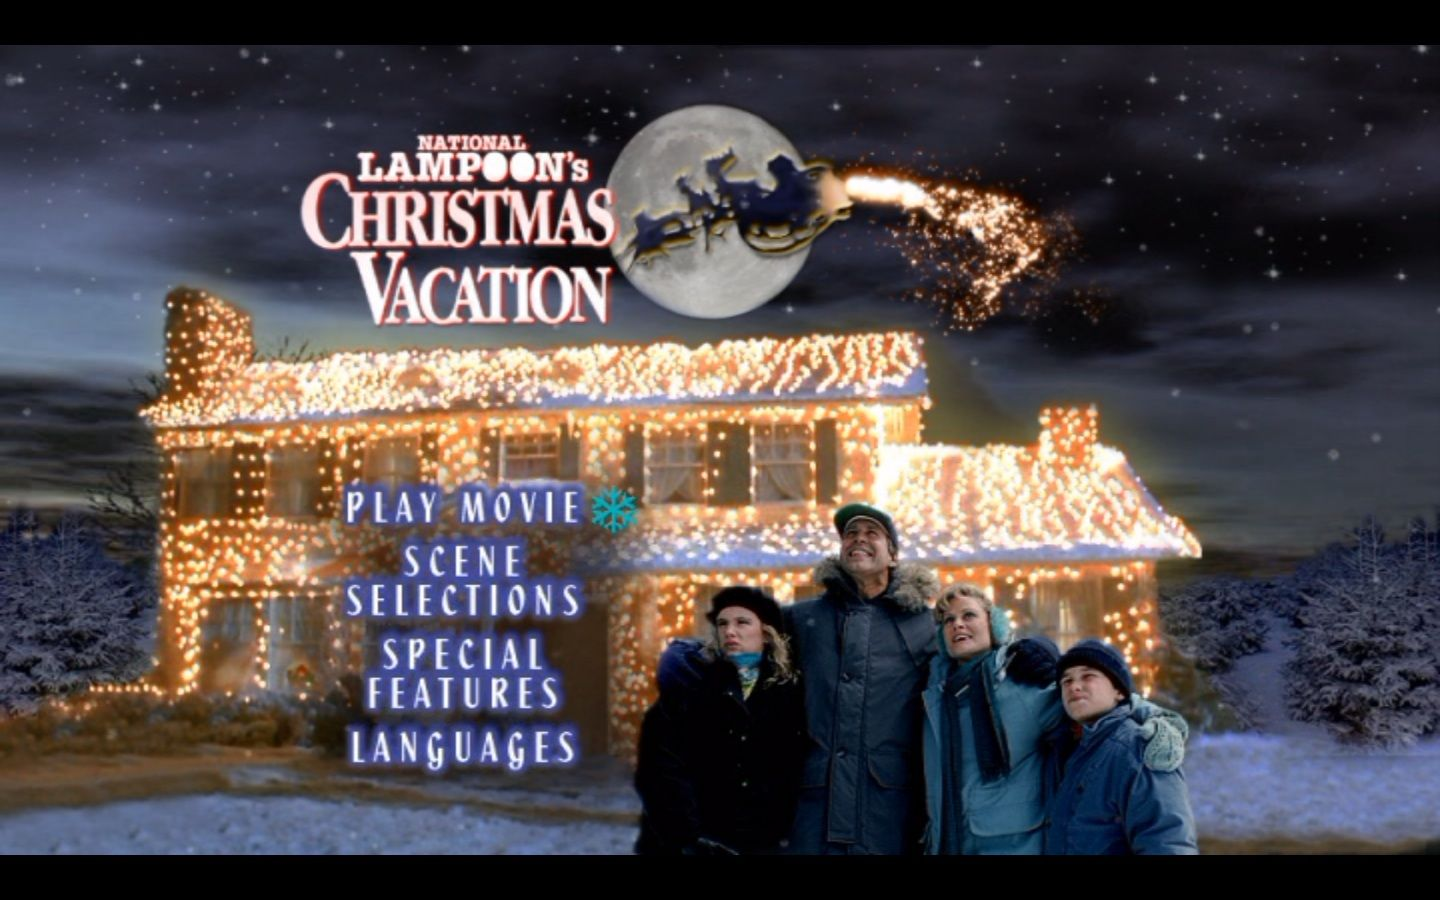 Christmas Vacation Art Wallpaper 1440x900 Hot HD Wallpaper 1440x900